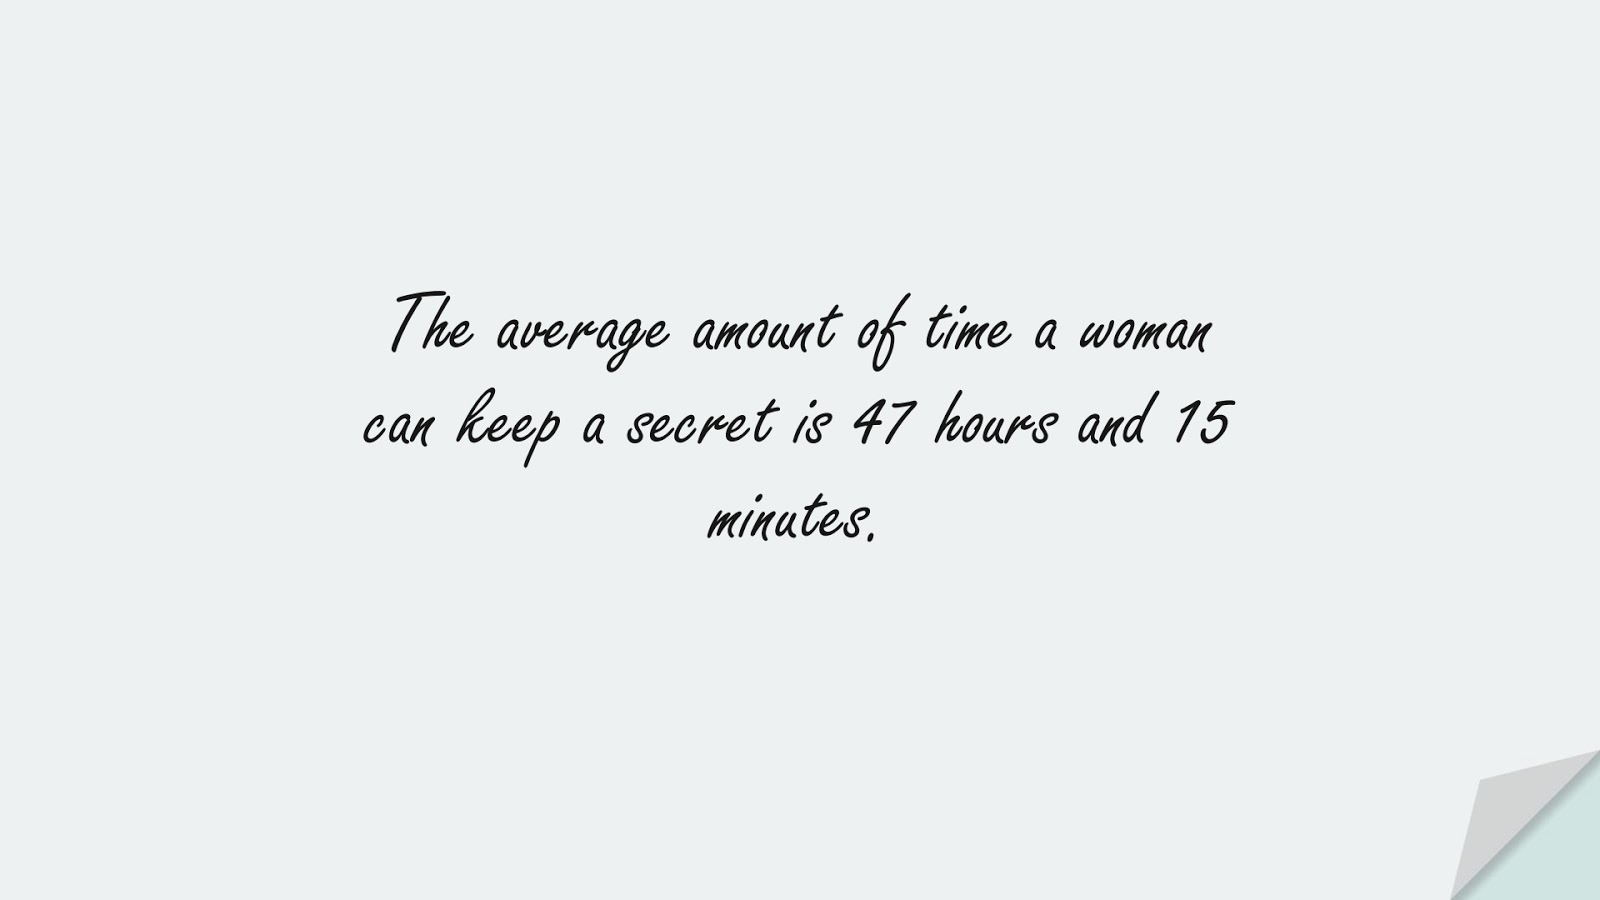 The average amount of time a woman can keep a secret is 47 hours and 15 minutes.FALSE